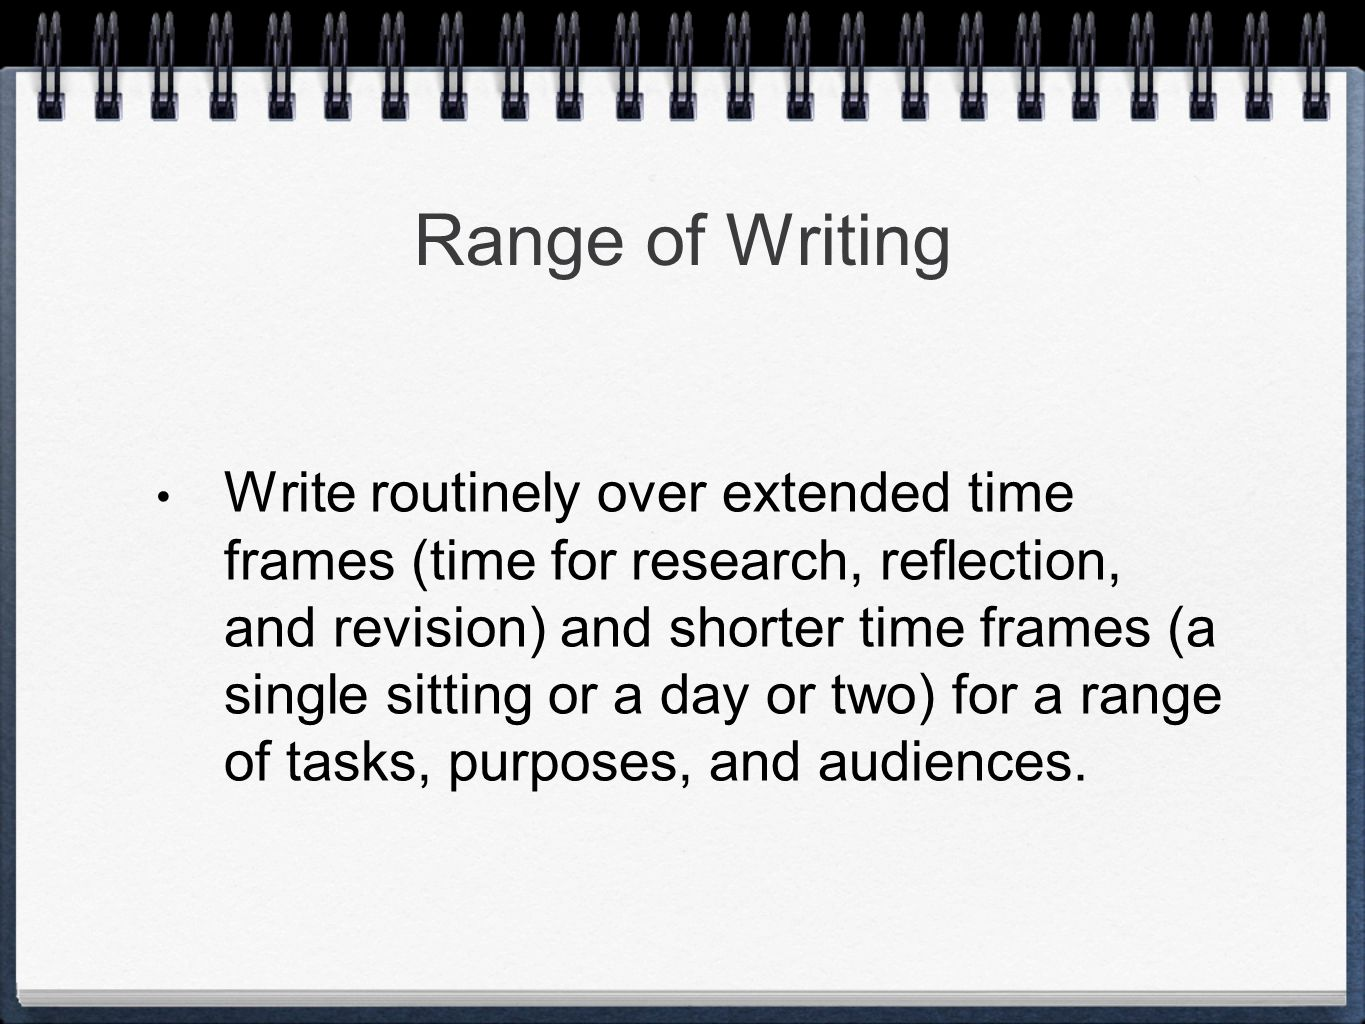 Range of Writing Write routinely over extended time frames (time for research, reflection, and revision) and shorter time frames (a single sitting or a day or two) for a range of tasks, purposes, and audiences.